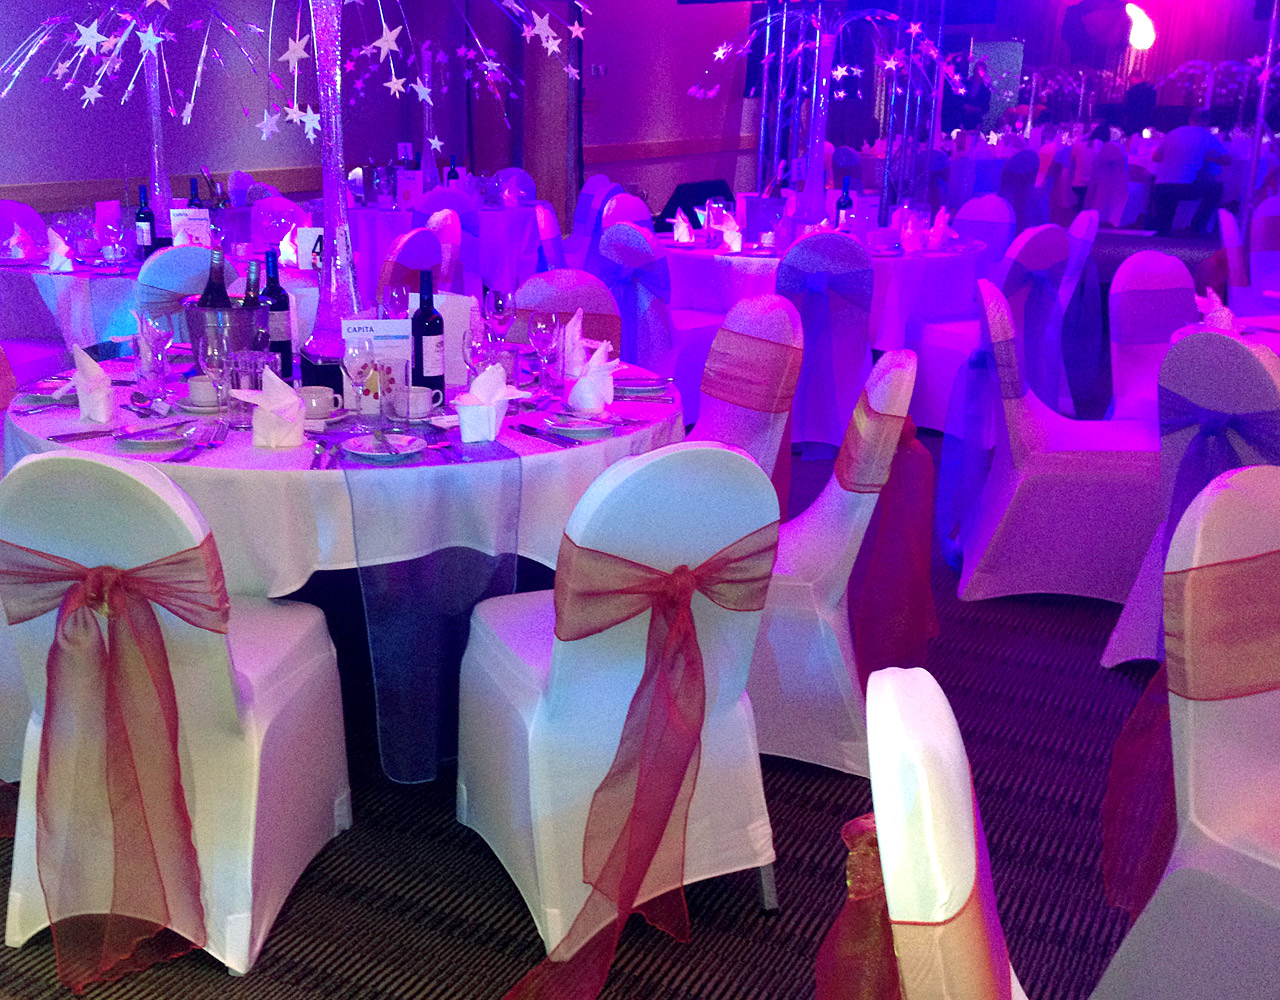 Stylish Seating Corporate Event Chair Covers and Sashes